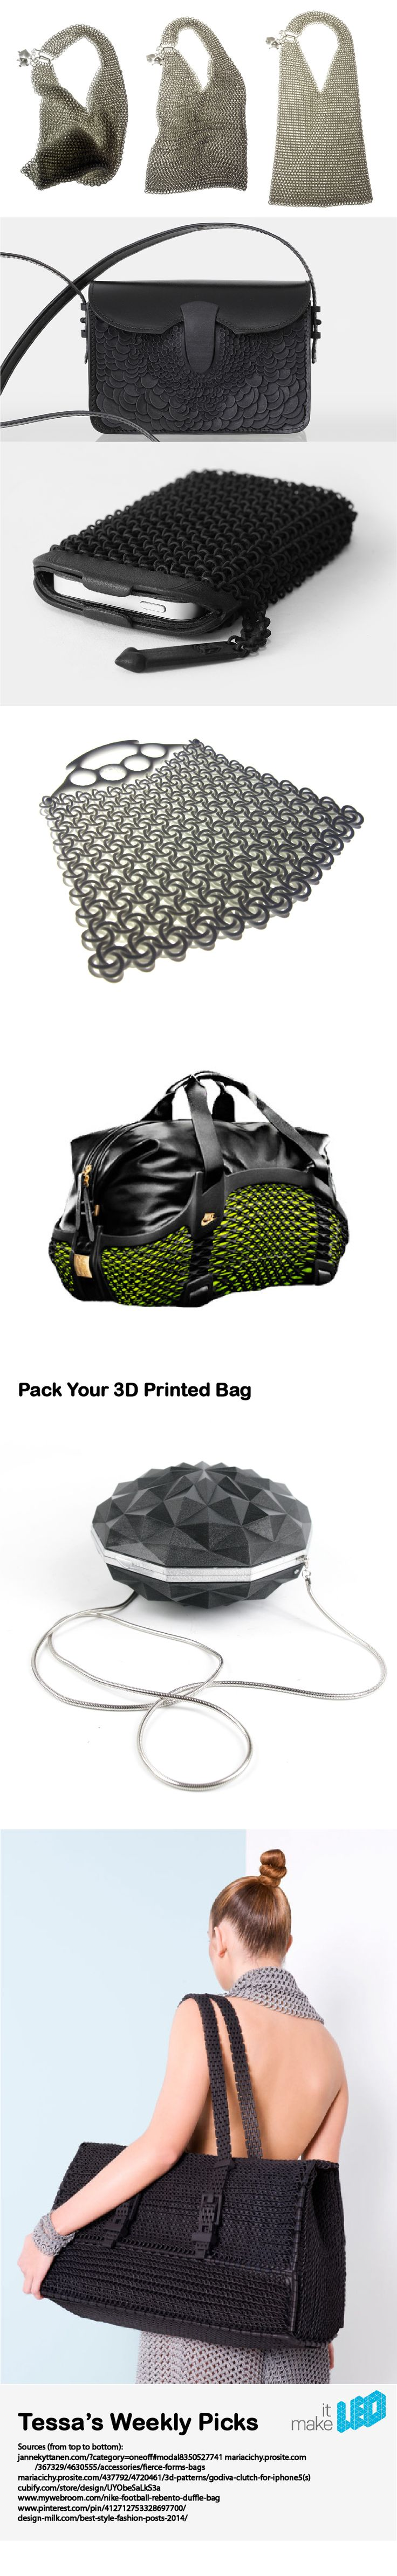 How to carry around your stuff? 7 3D printed bags worth bringing along.